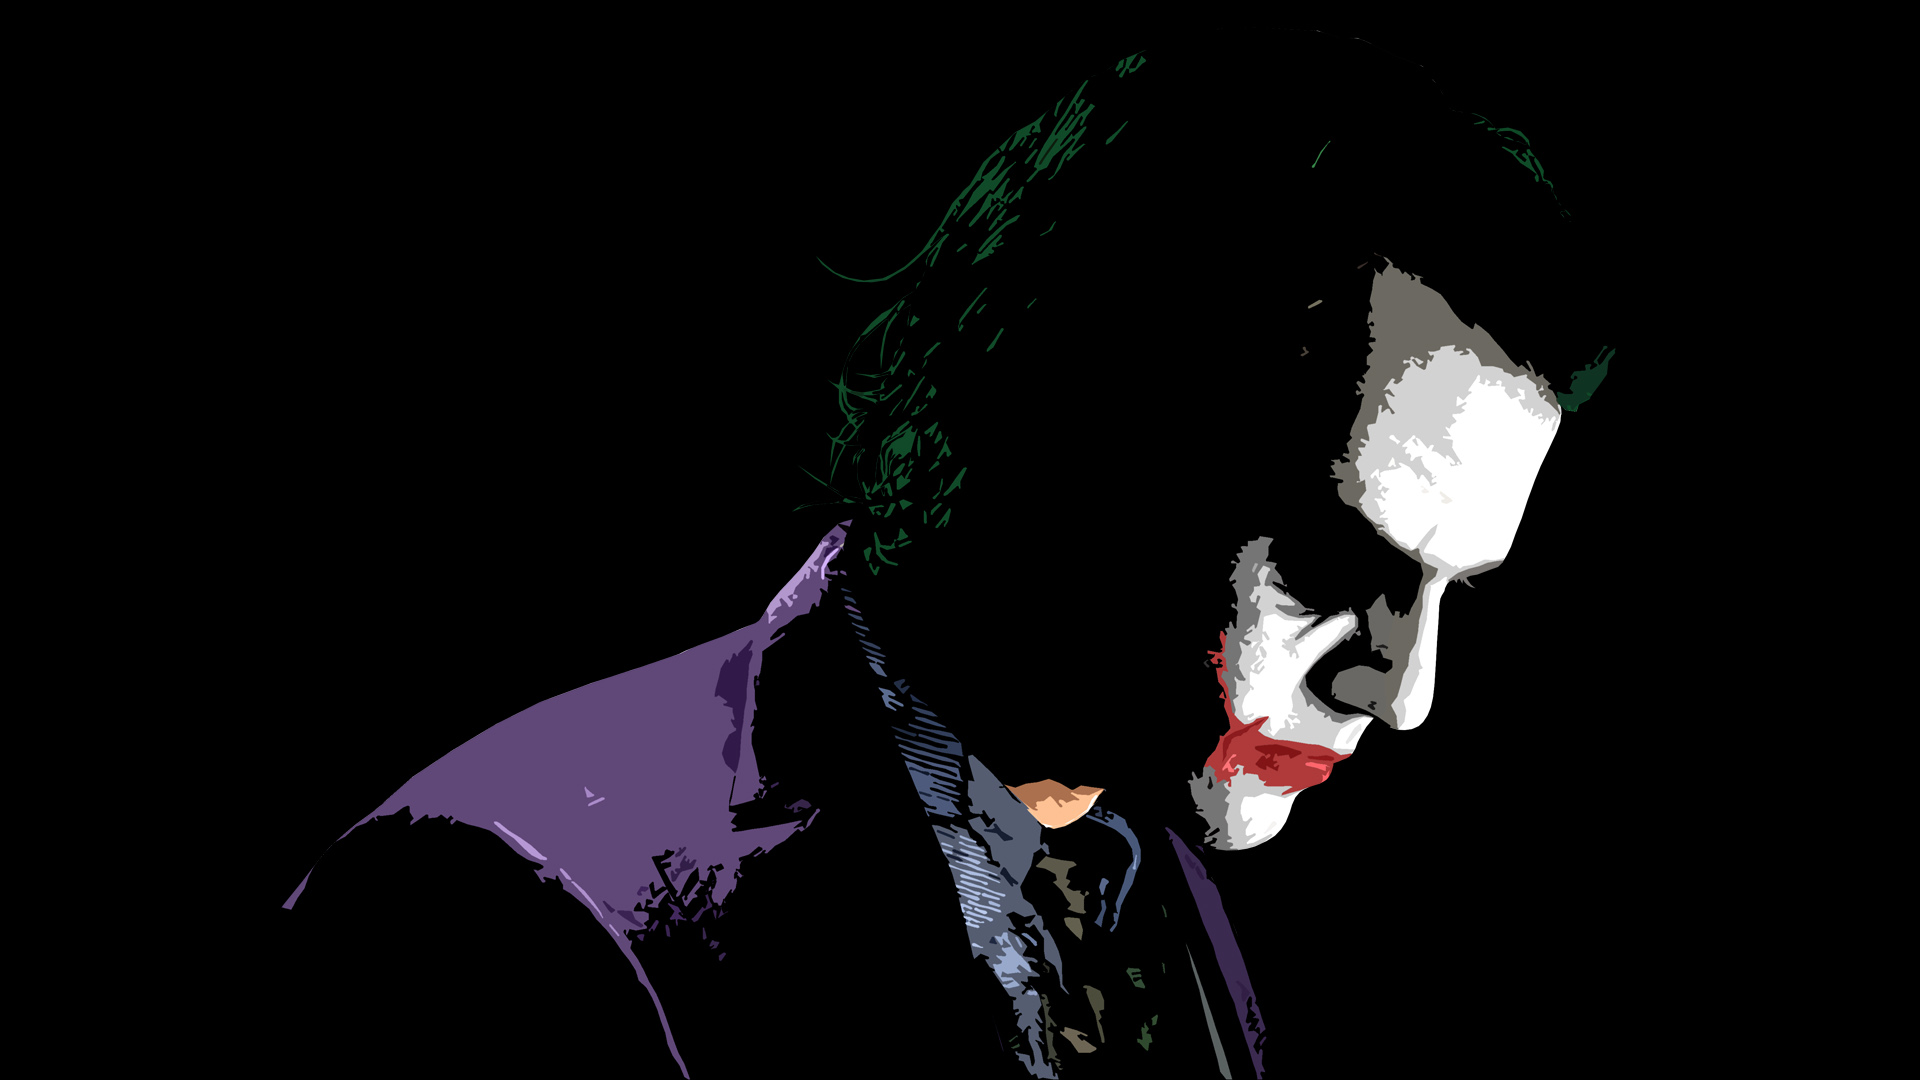 Wallpapers del Joker   Taringa 1920x1080